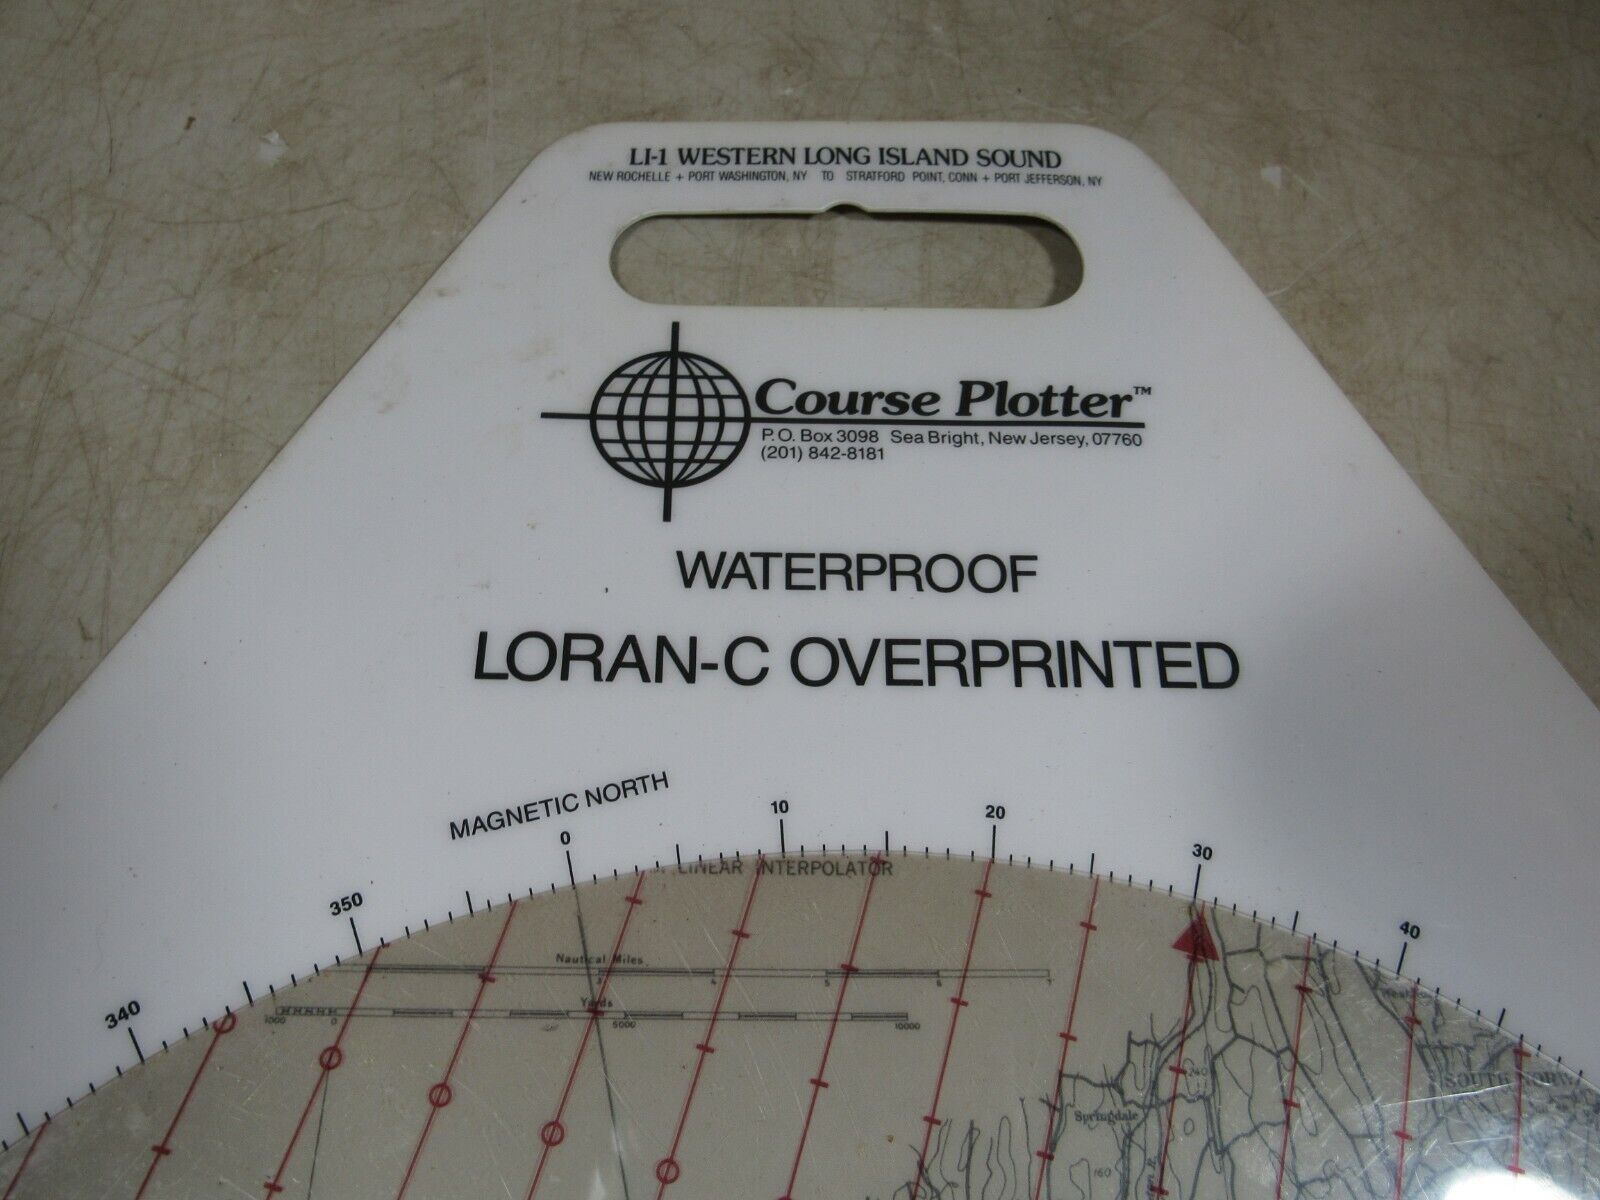 Vintage Waterproof Loran-C Overprinted Course Plotter Chart Long Island Sound